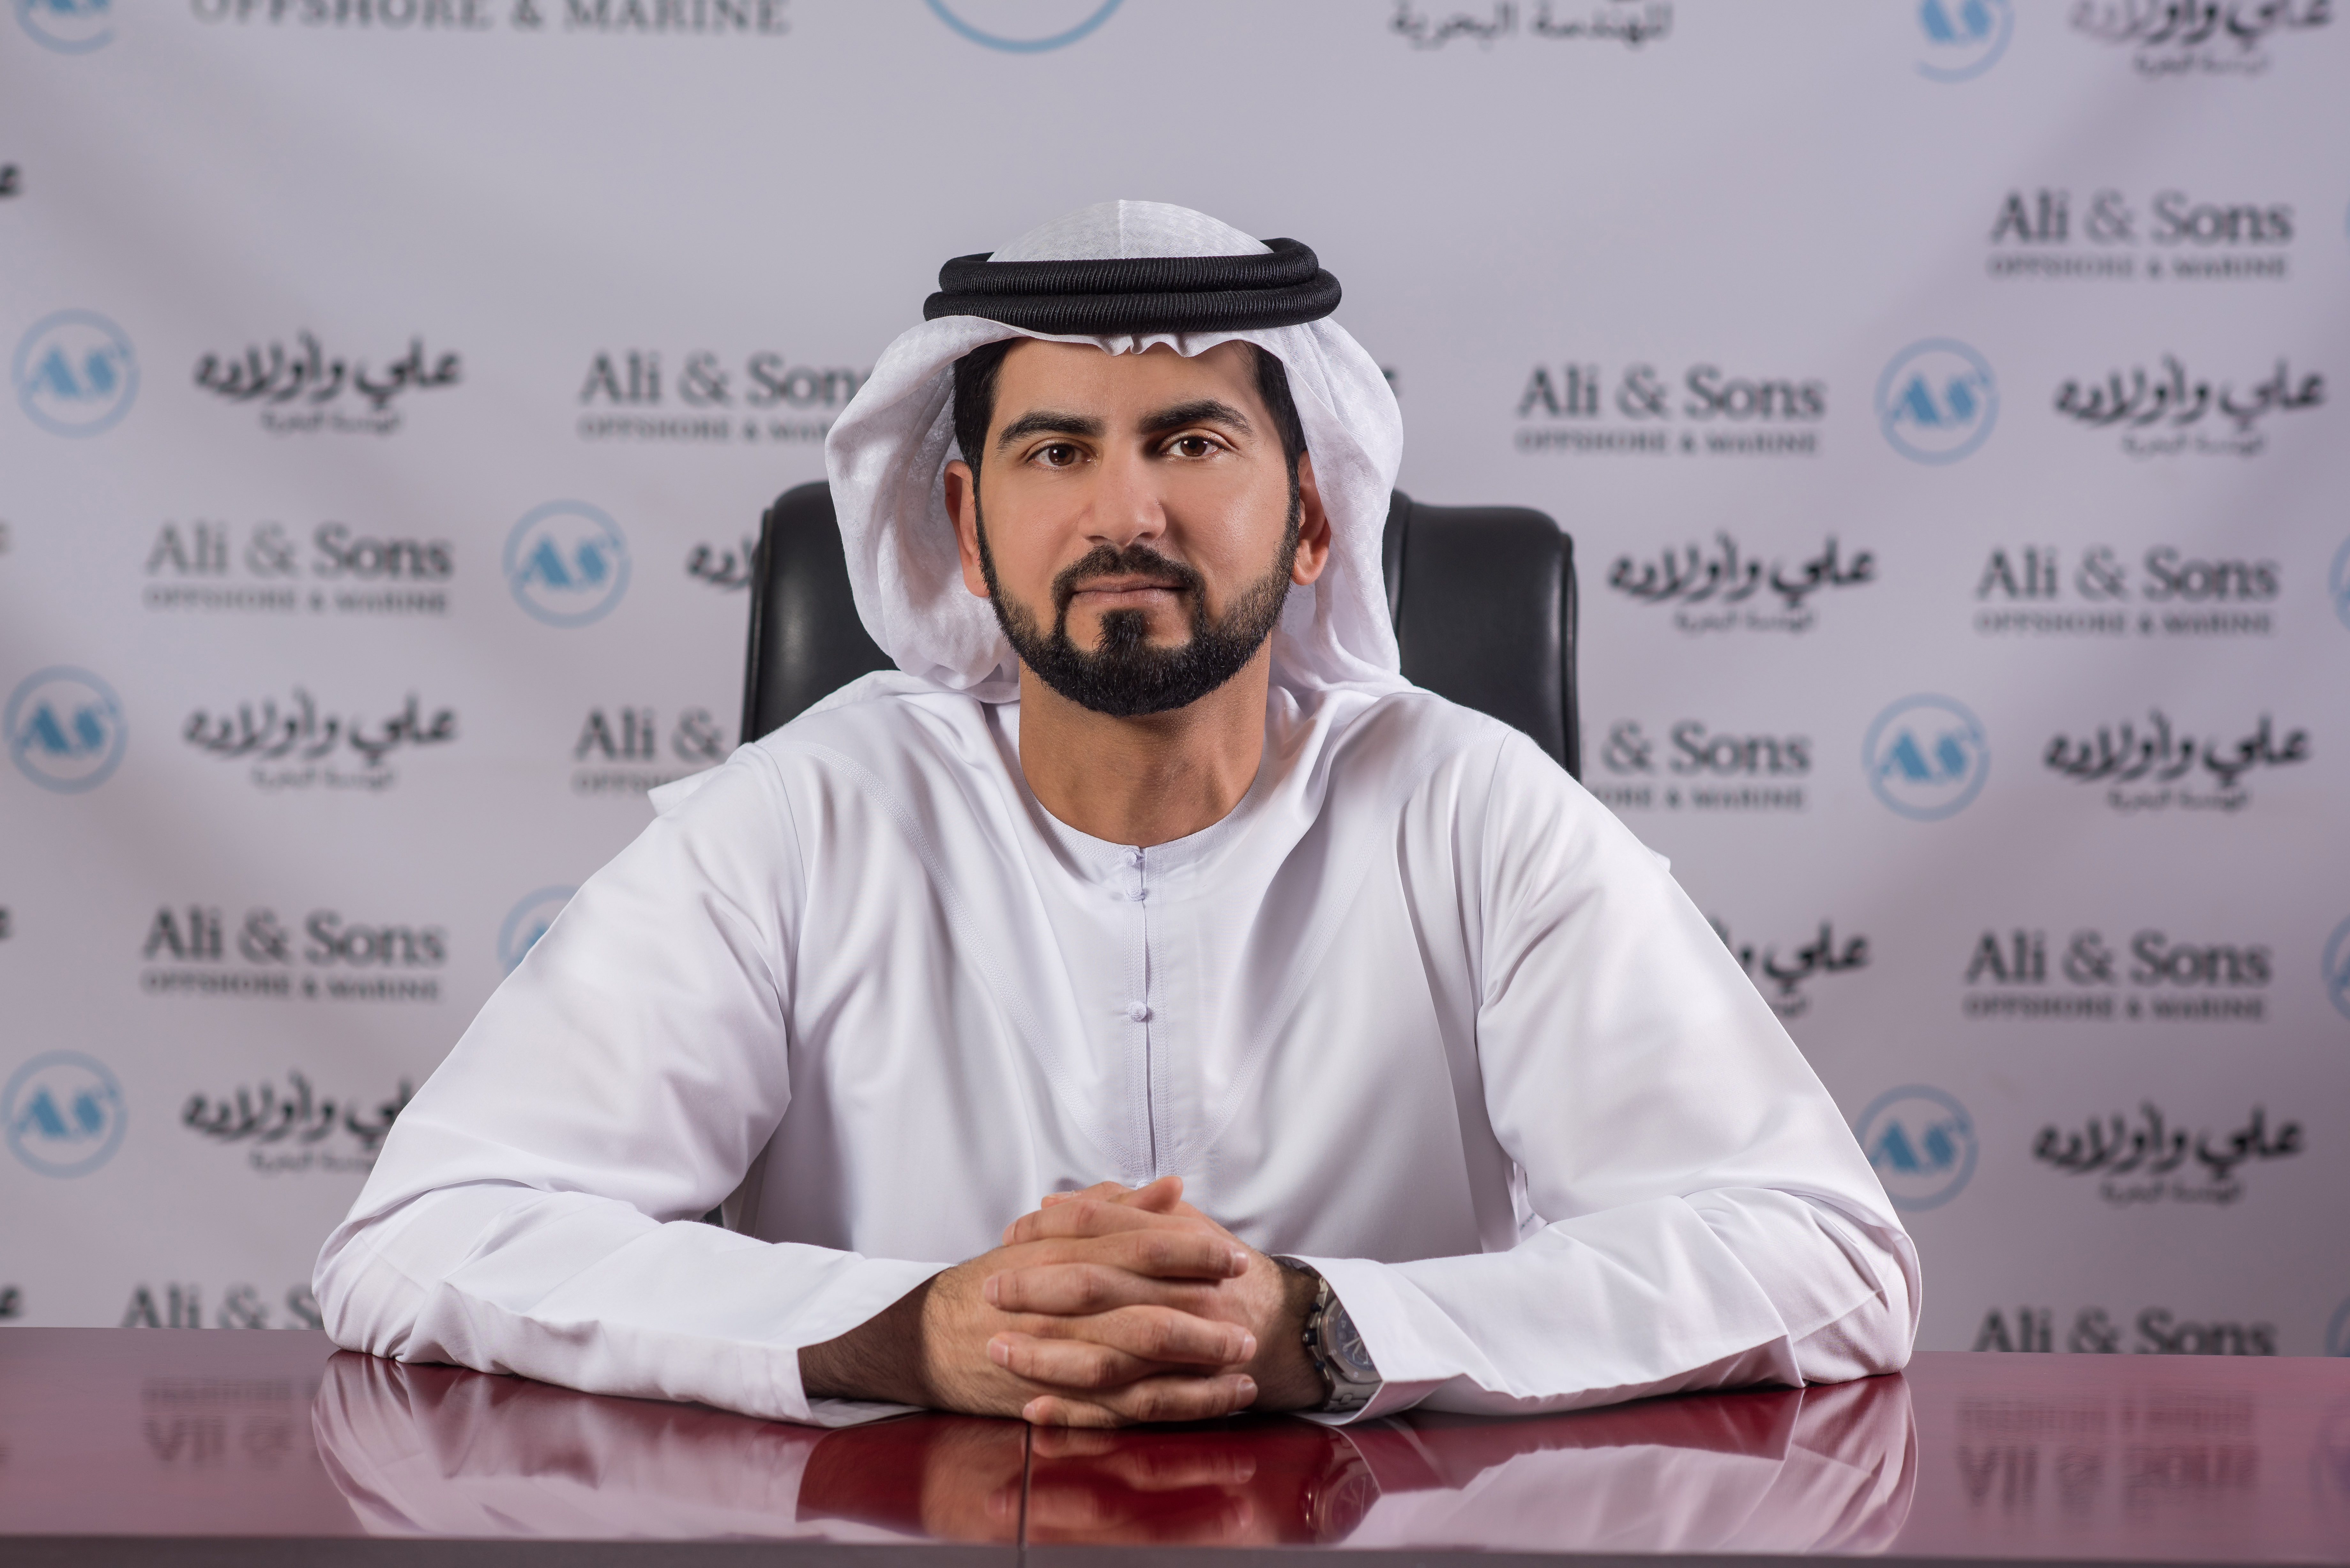 Al-Dhaheri: We aspire to be a premier conglomerate and a destination